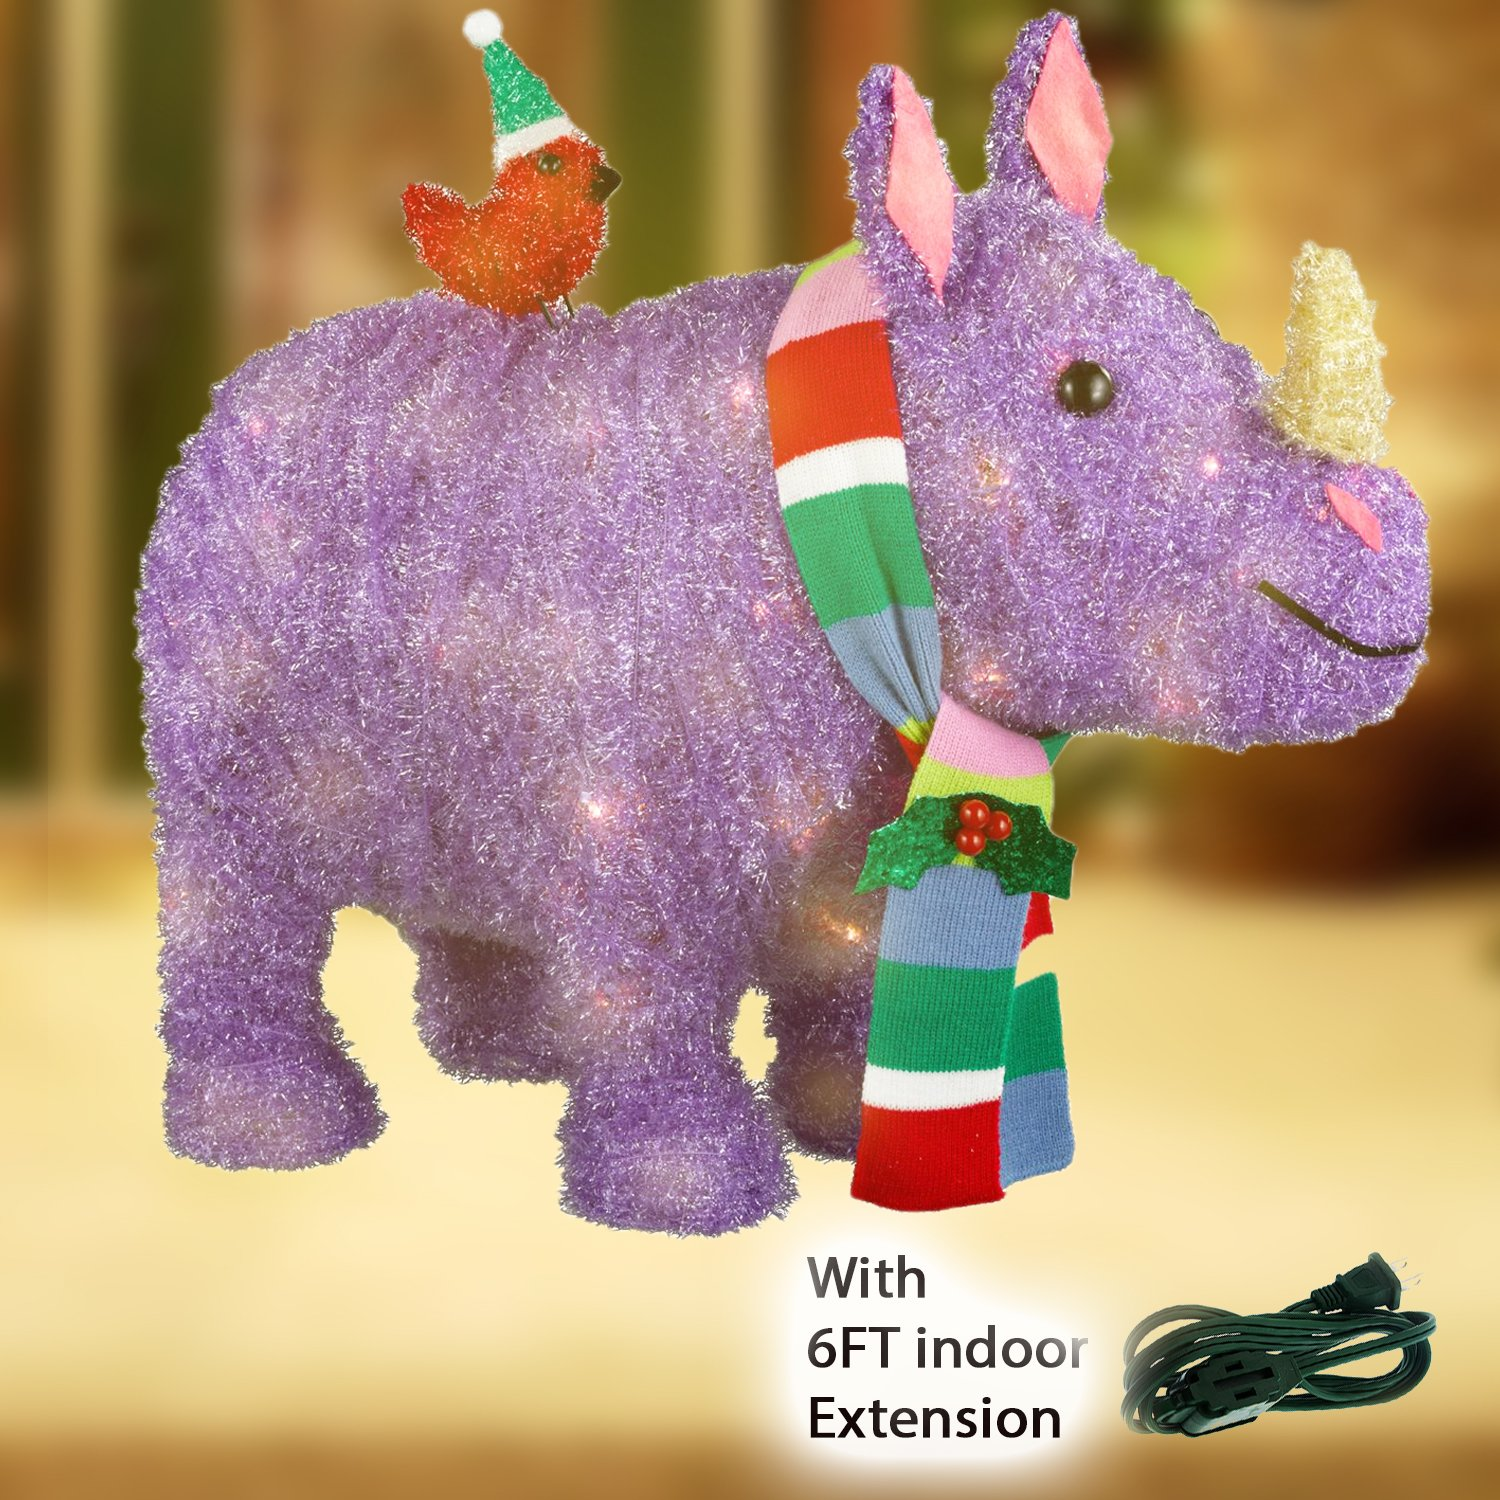 Christmas Holiday Decorations Tinsel Lit Rhino with Scarf and Small Bird 21'' + Extra BONUS 6FT Greenbrier Indoor Extension Cord